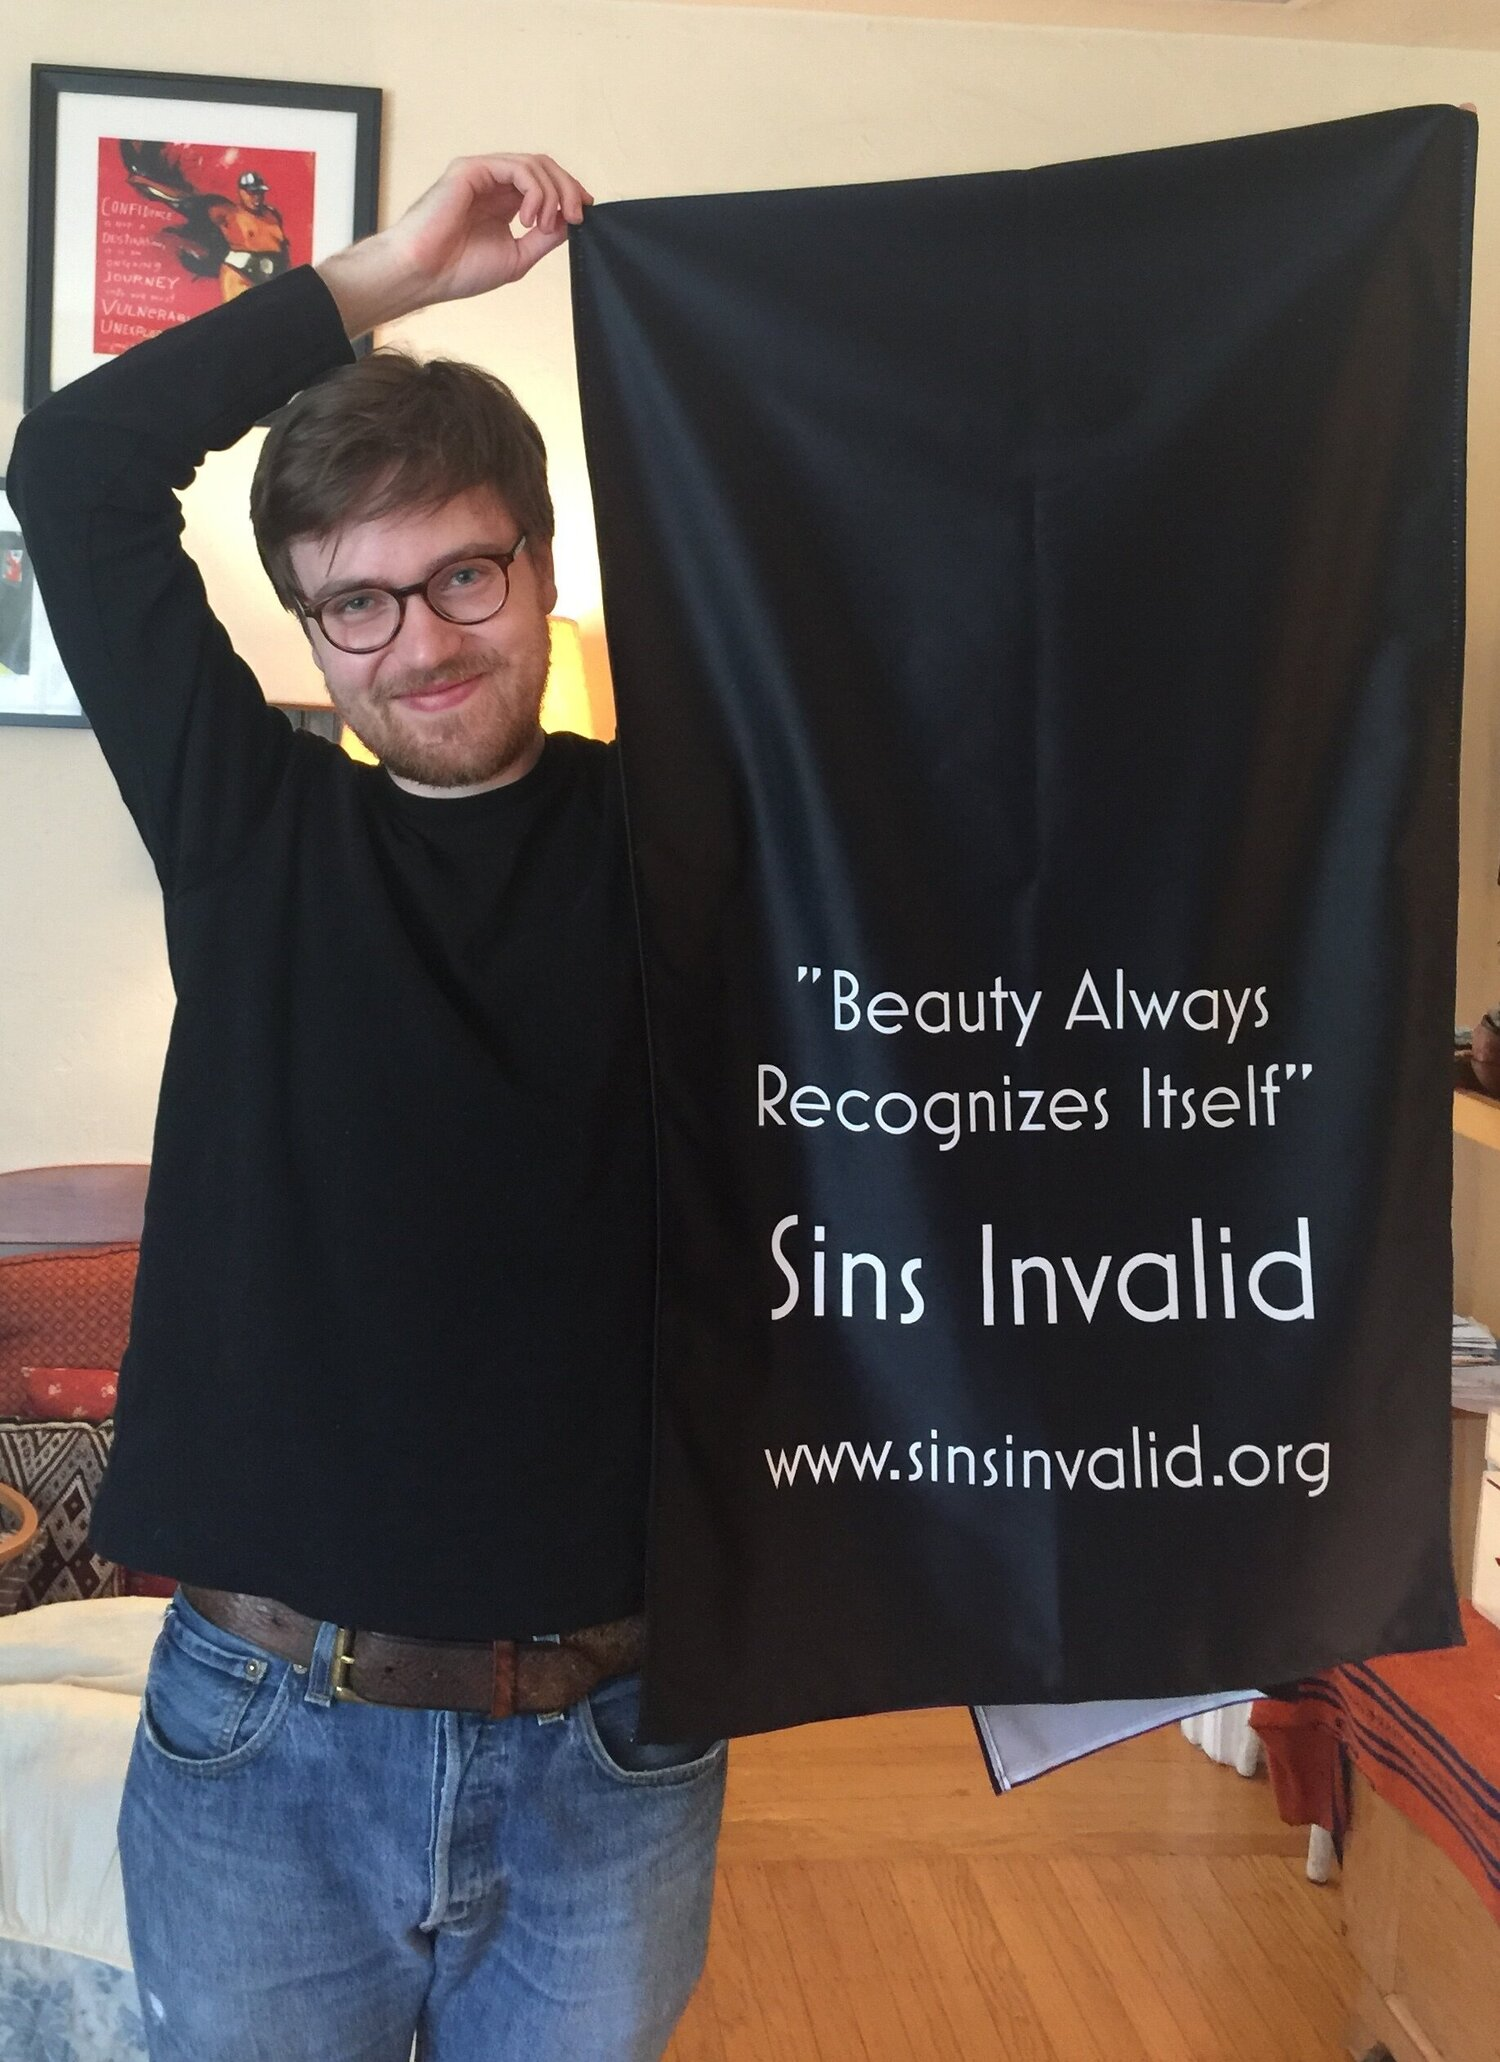 """[Image Description: A white person with brown hair, glasses, and facial hair smiles at the camera, wearing a long-sleeved black t-shirt and jeans, holding up a black banner with white text that reads """"Beauty Always Recognizes Itself - Sins Invalid - www.sinsinvalid.org.""""]"""